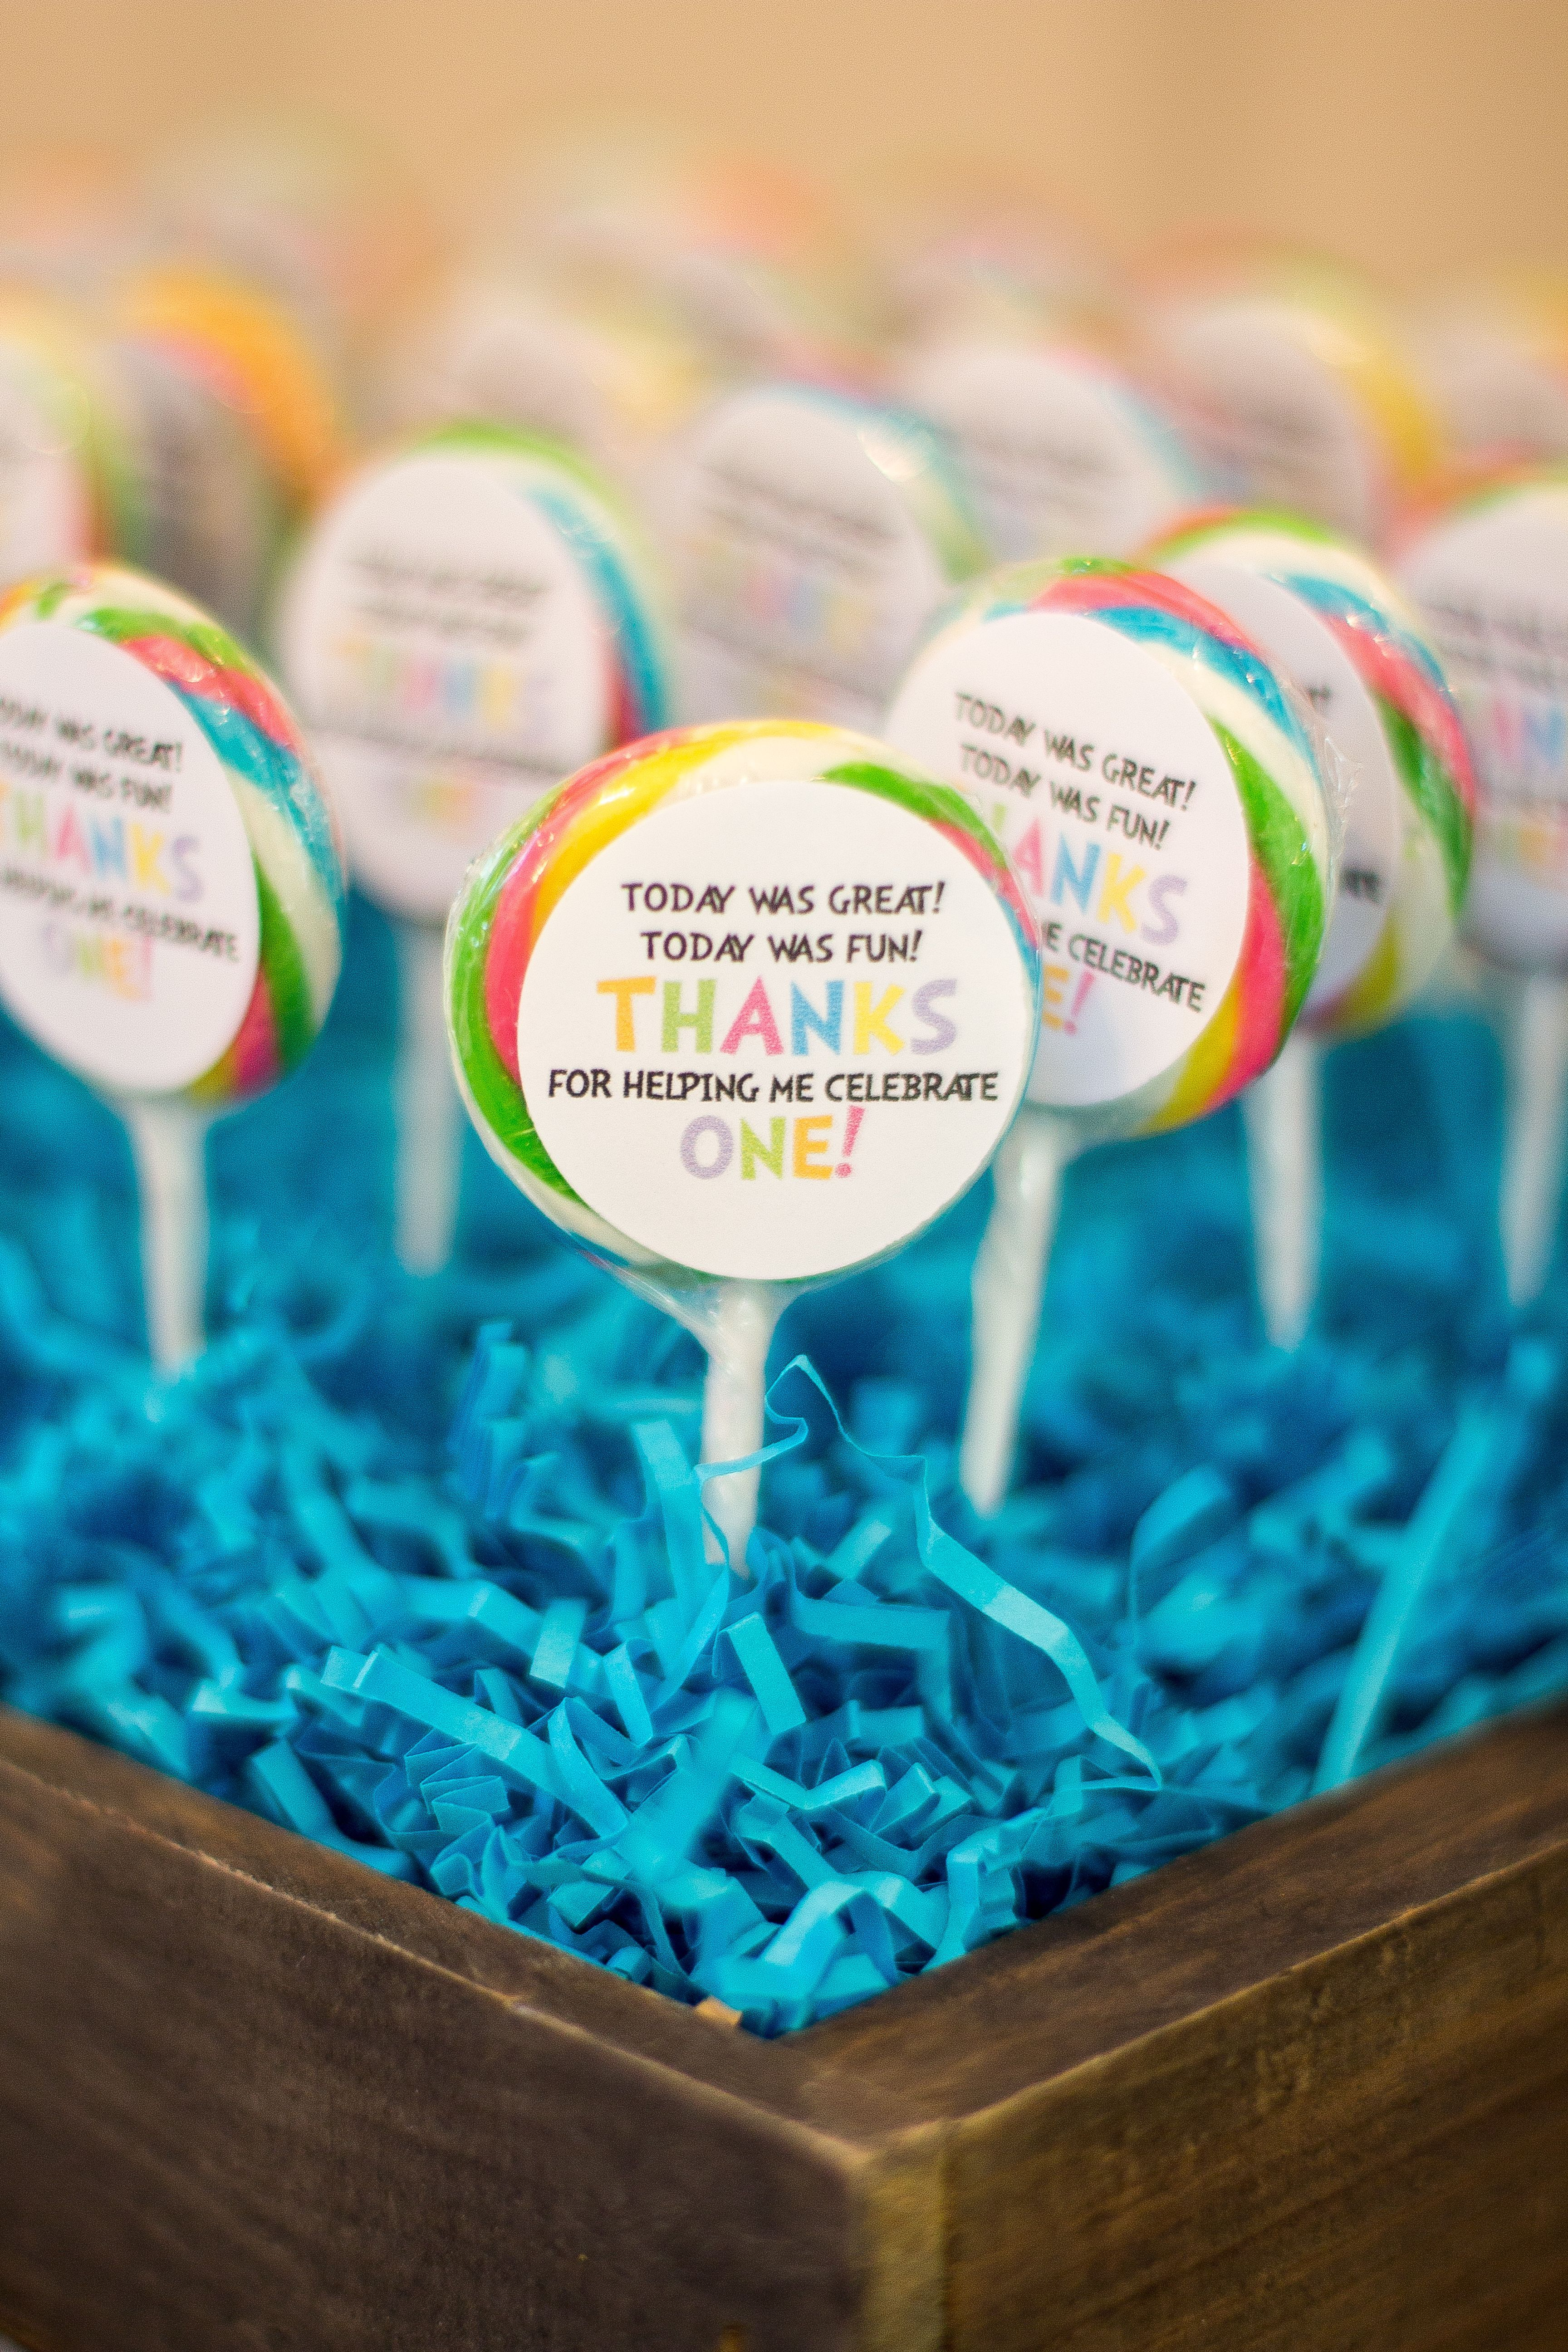 Dr Seuss First Birthday Free Party Favor Printables Sweetwood Creative Co Atlanta Wedding Planner Upscale Event Design Dr Seuss Birthday Party Boy Birthday Parties Baby Boy Birthday